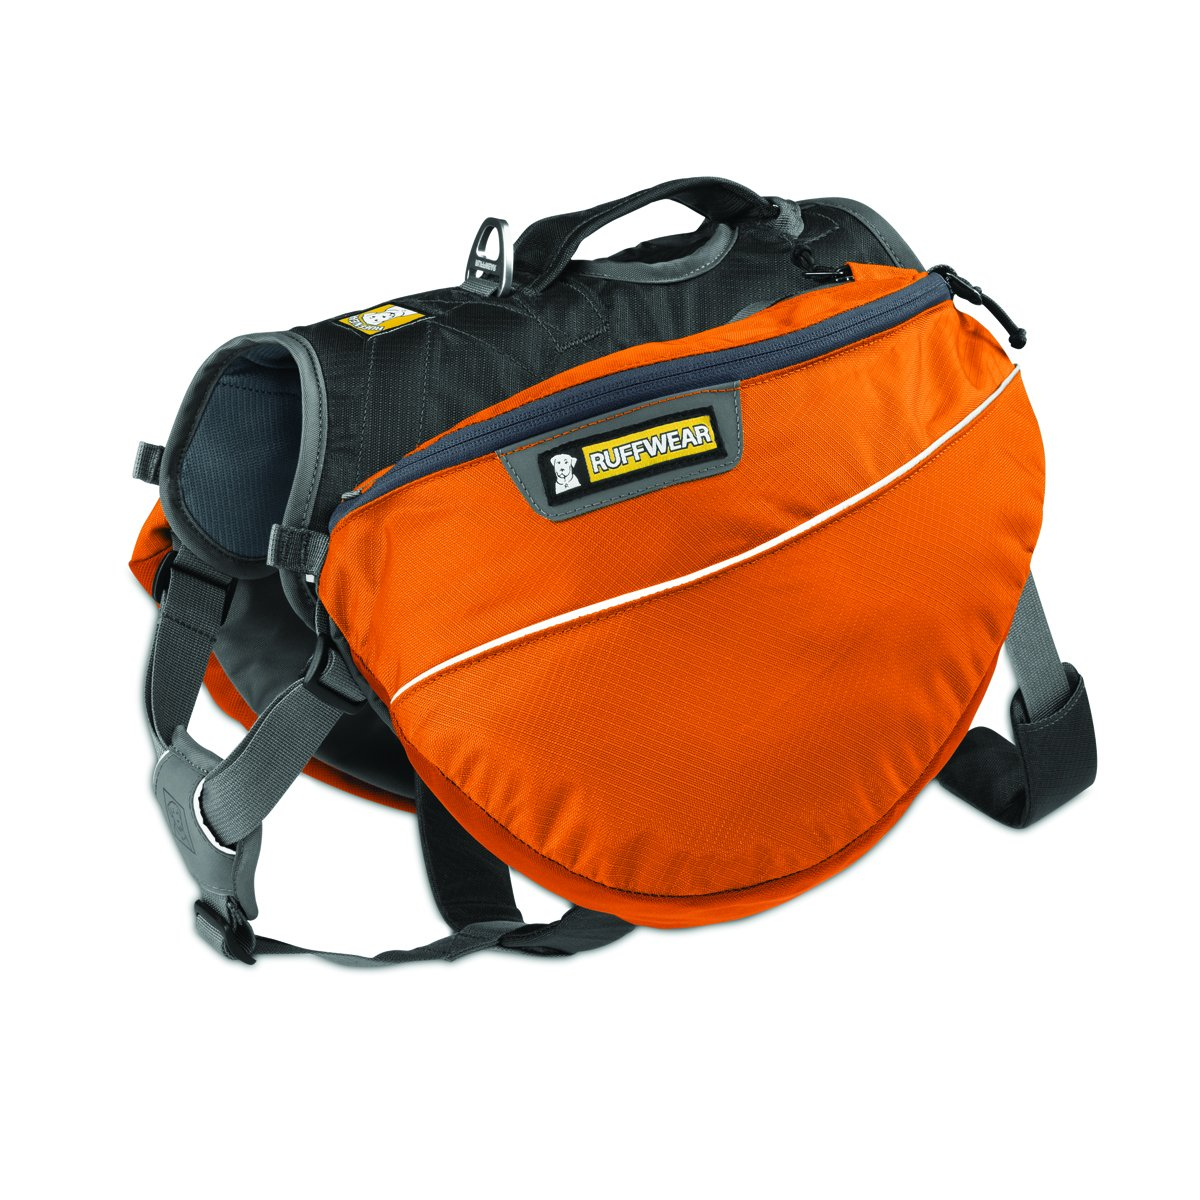 A product shot of the Ruffwear Hiking Backpack